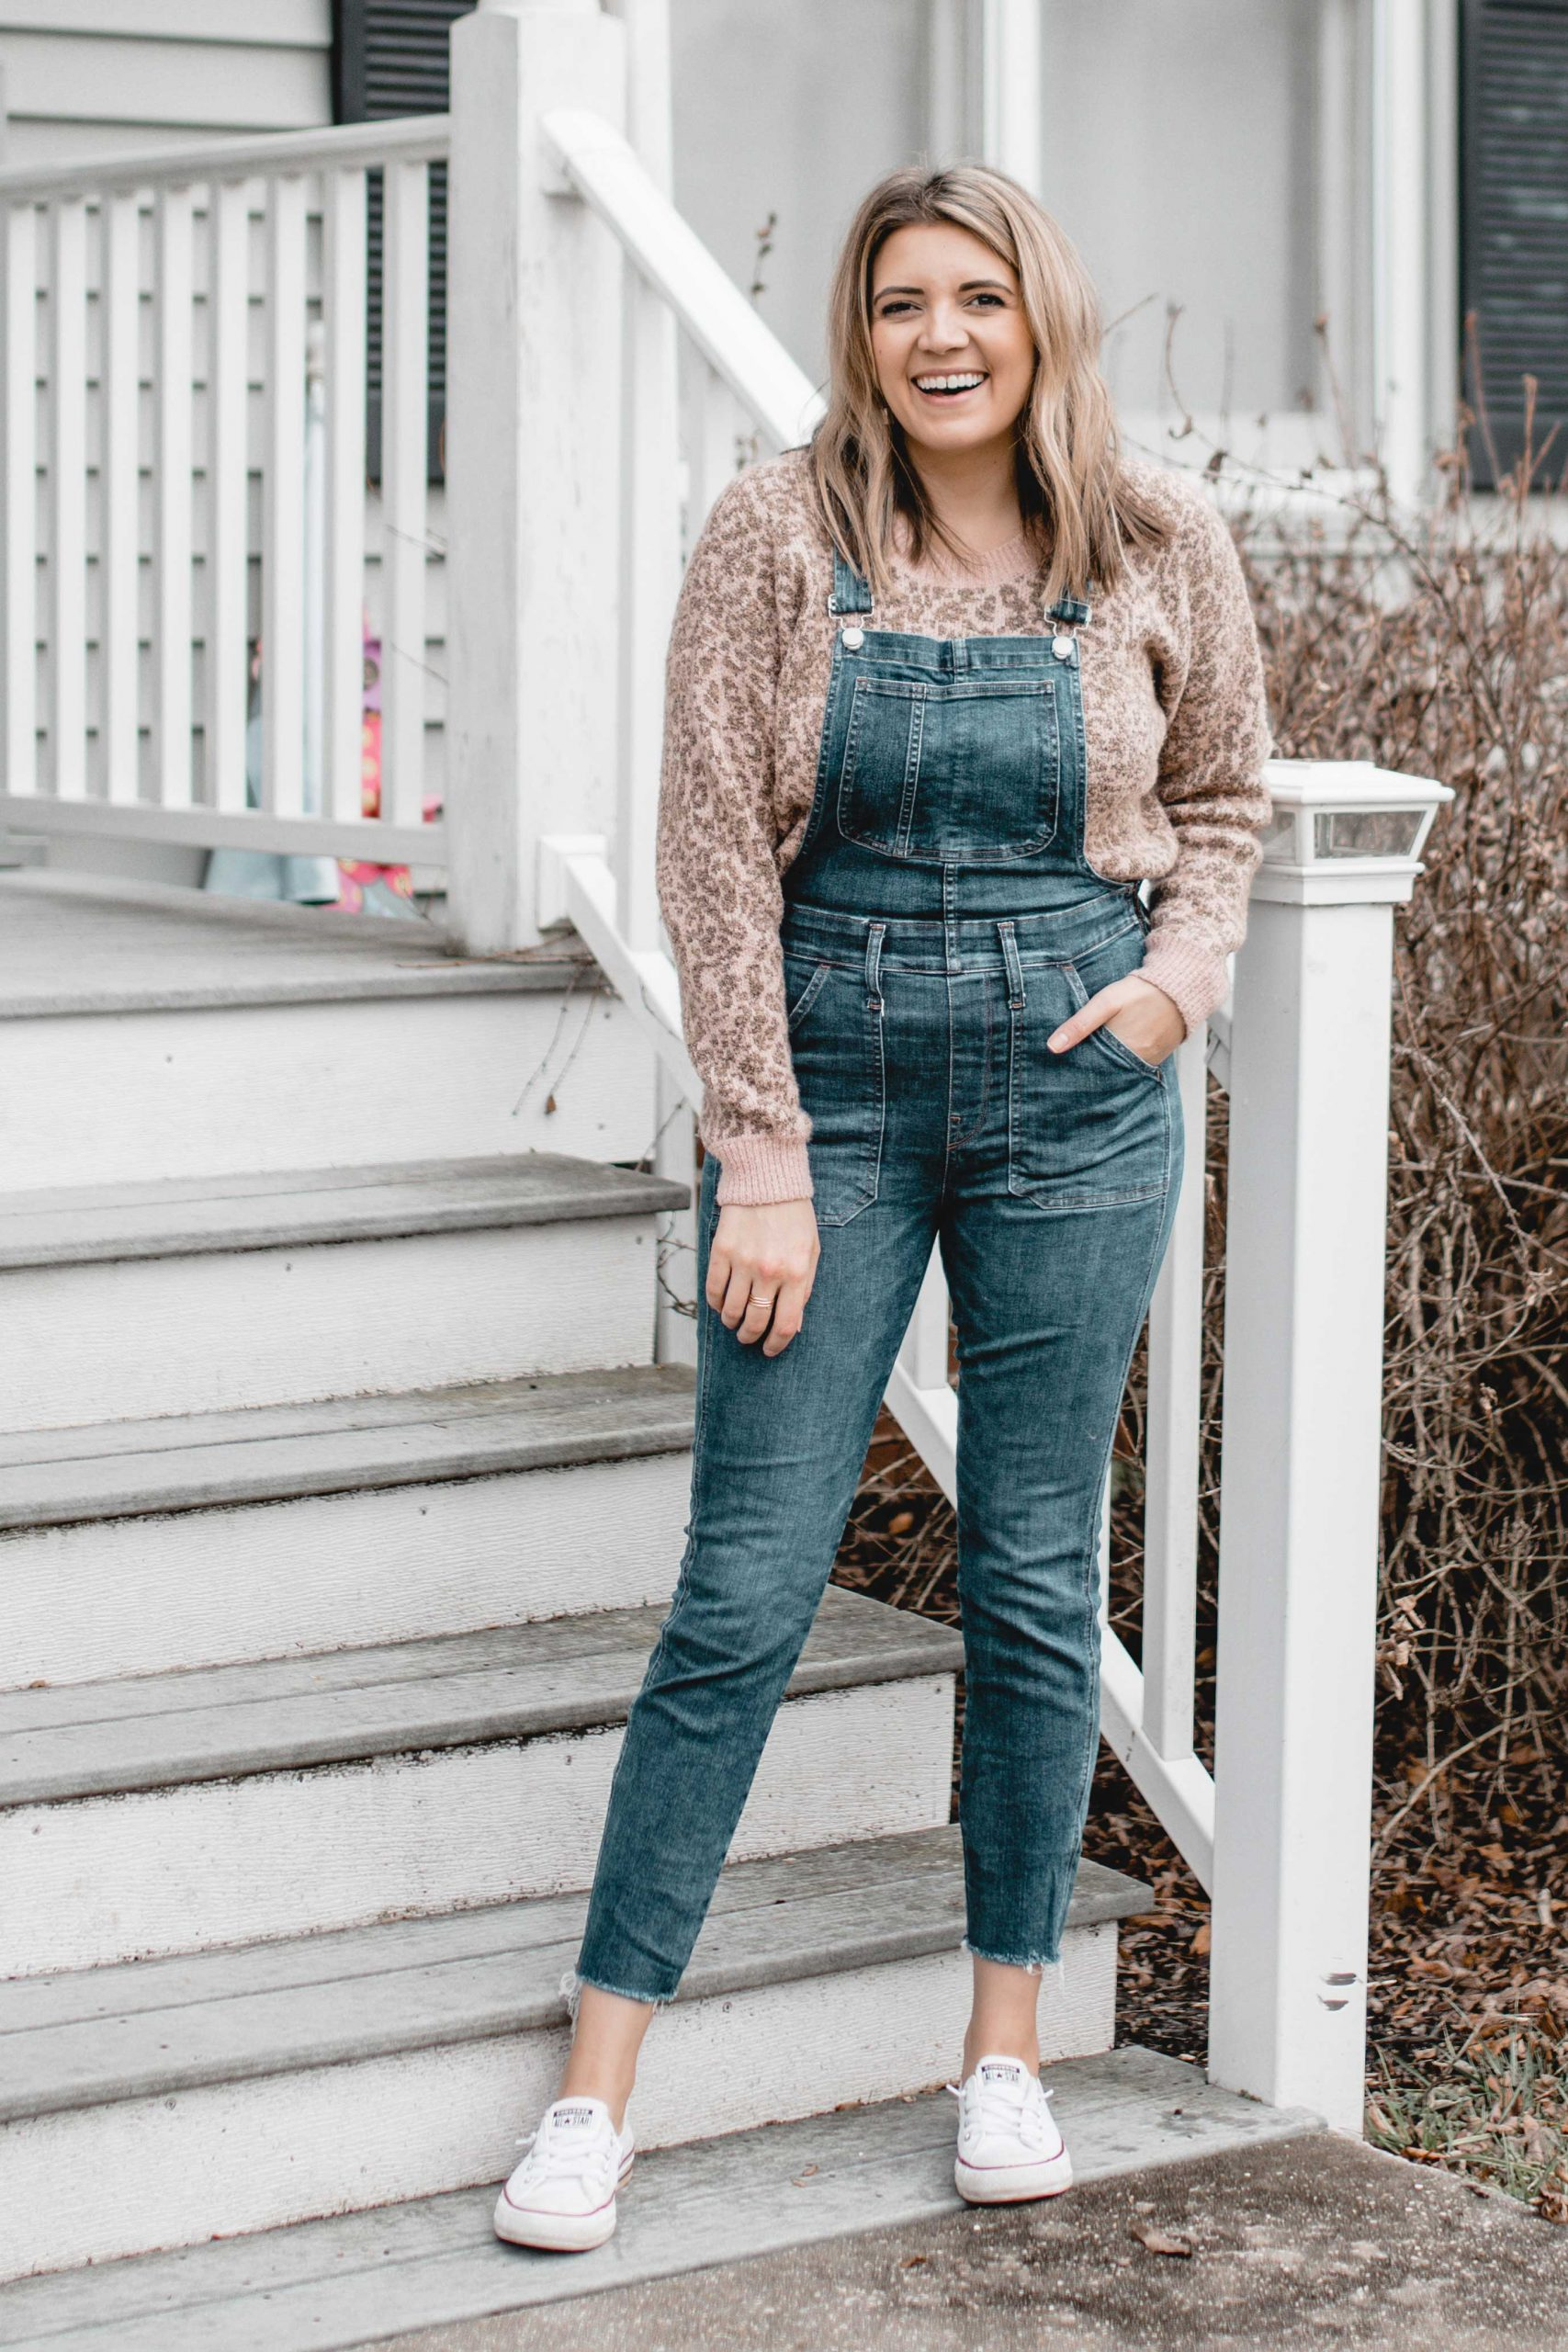 Richmond Virginia blogger, Lauren Dix, shares six ways to wear a leopard sweater! Both dressy and casual sweater outfits included!